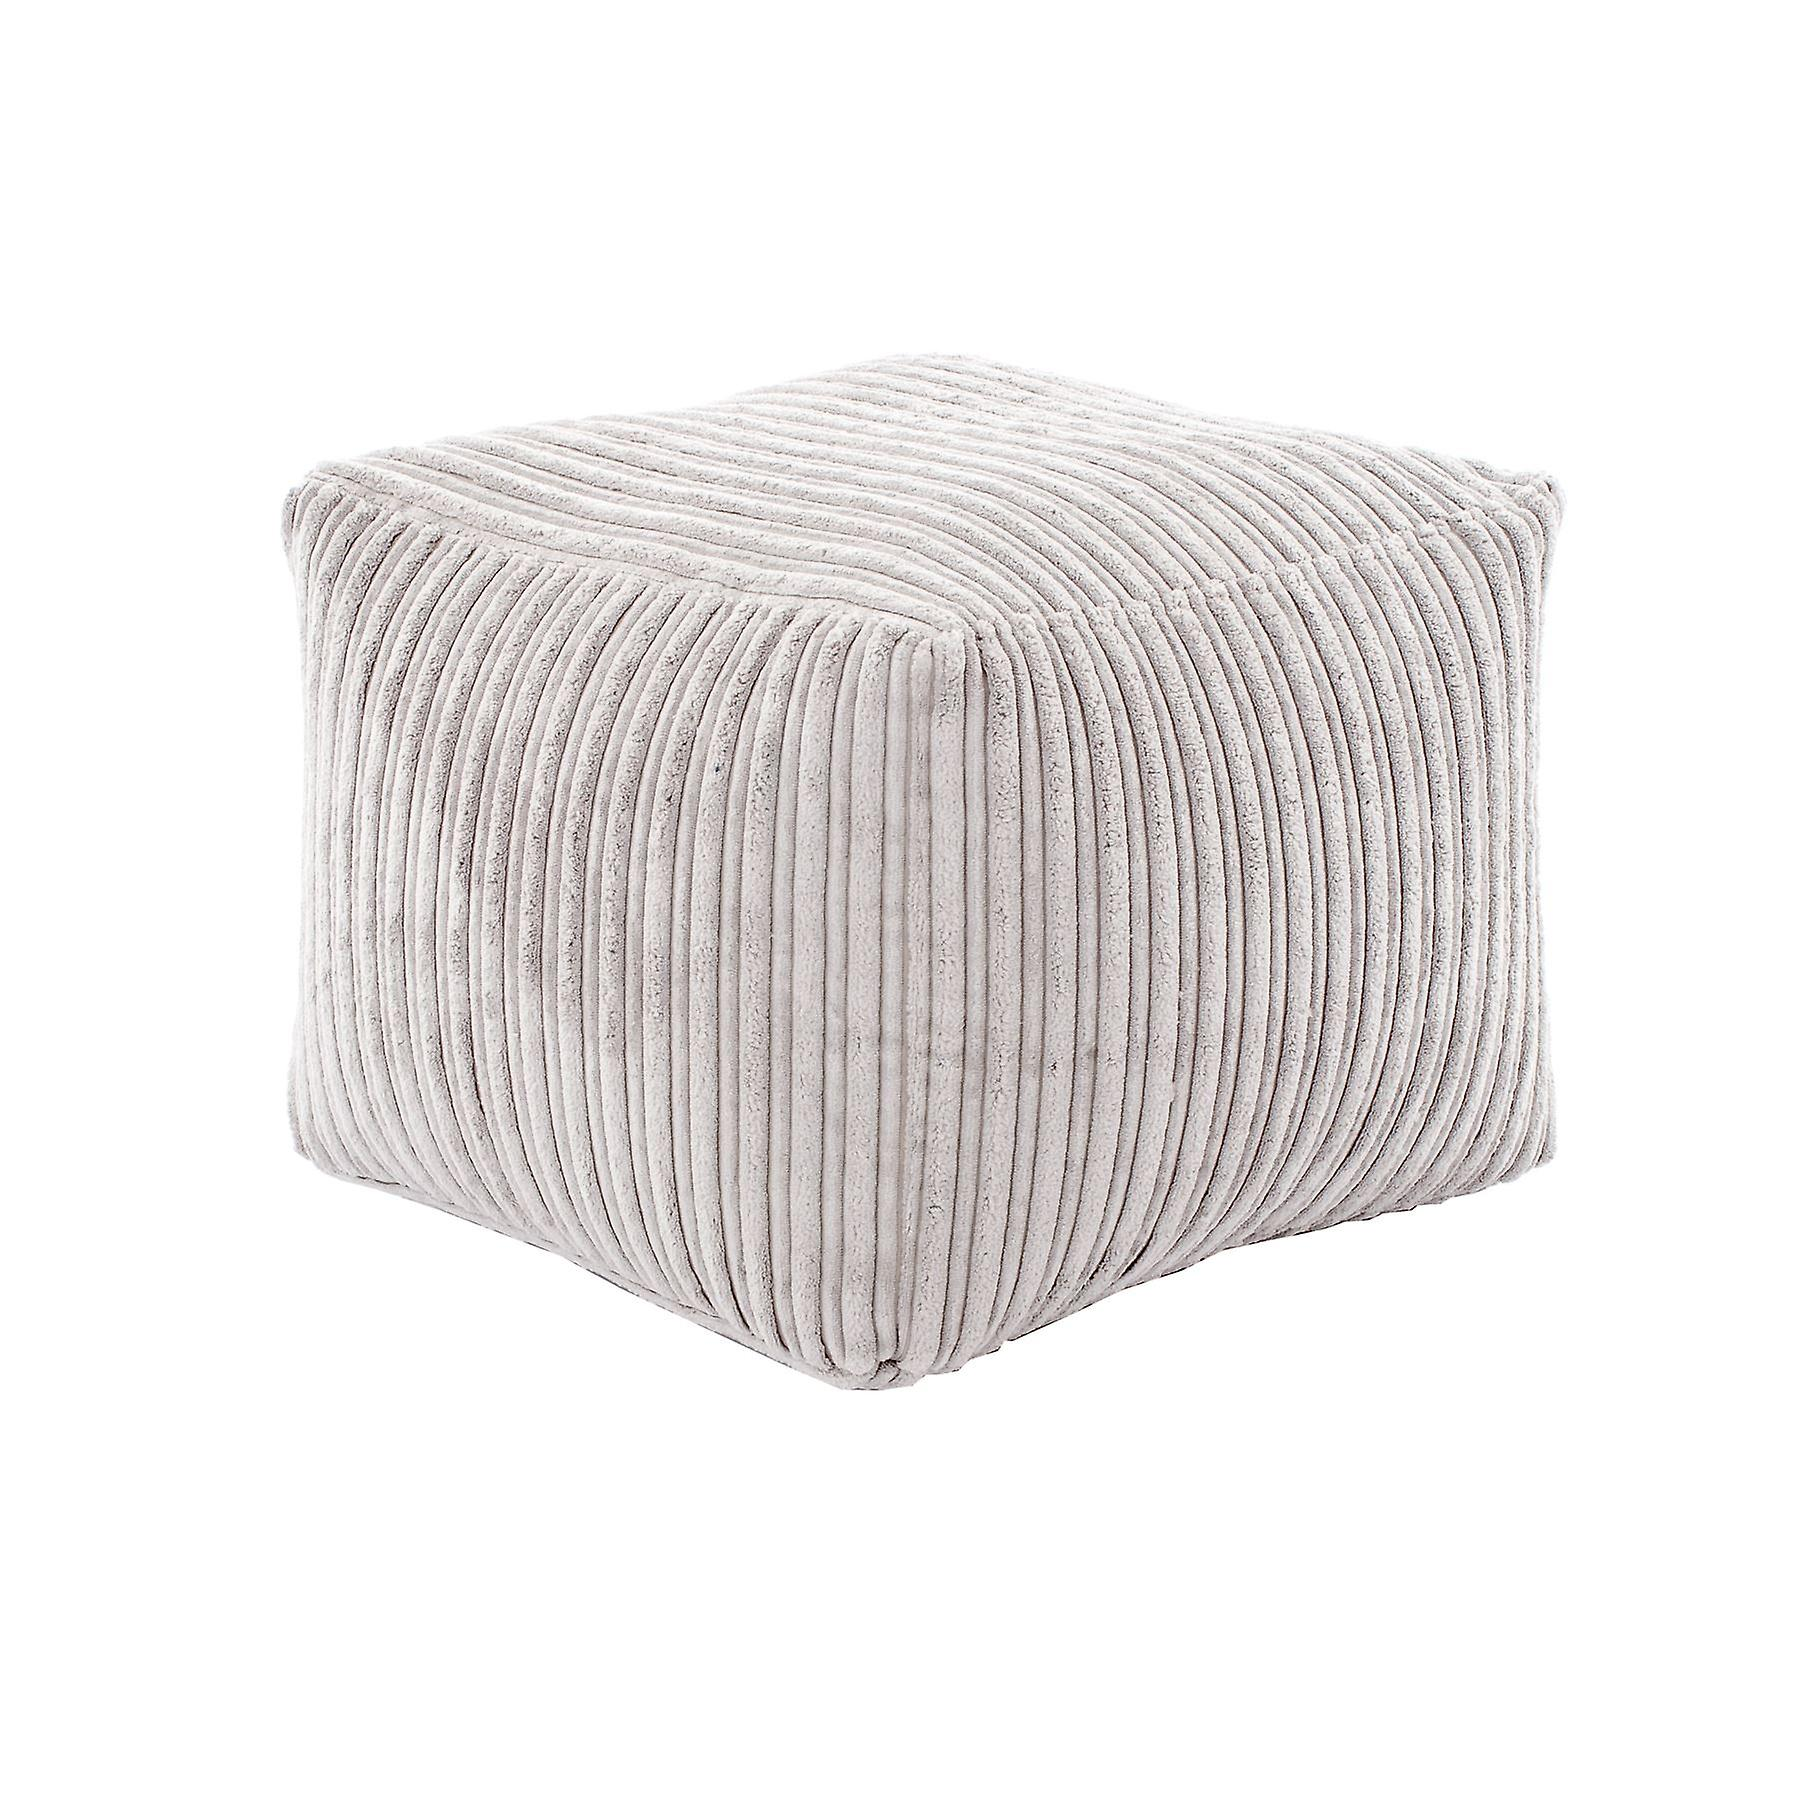 Mink Bag Pouffe Square Bean Cord Fabric Footstool Jumbo Soft Seat In yvnPm8ON0w